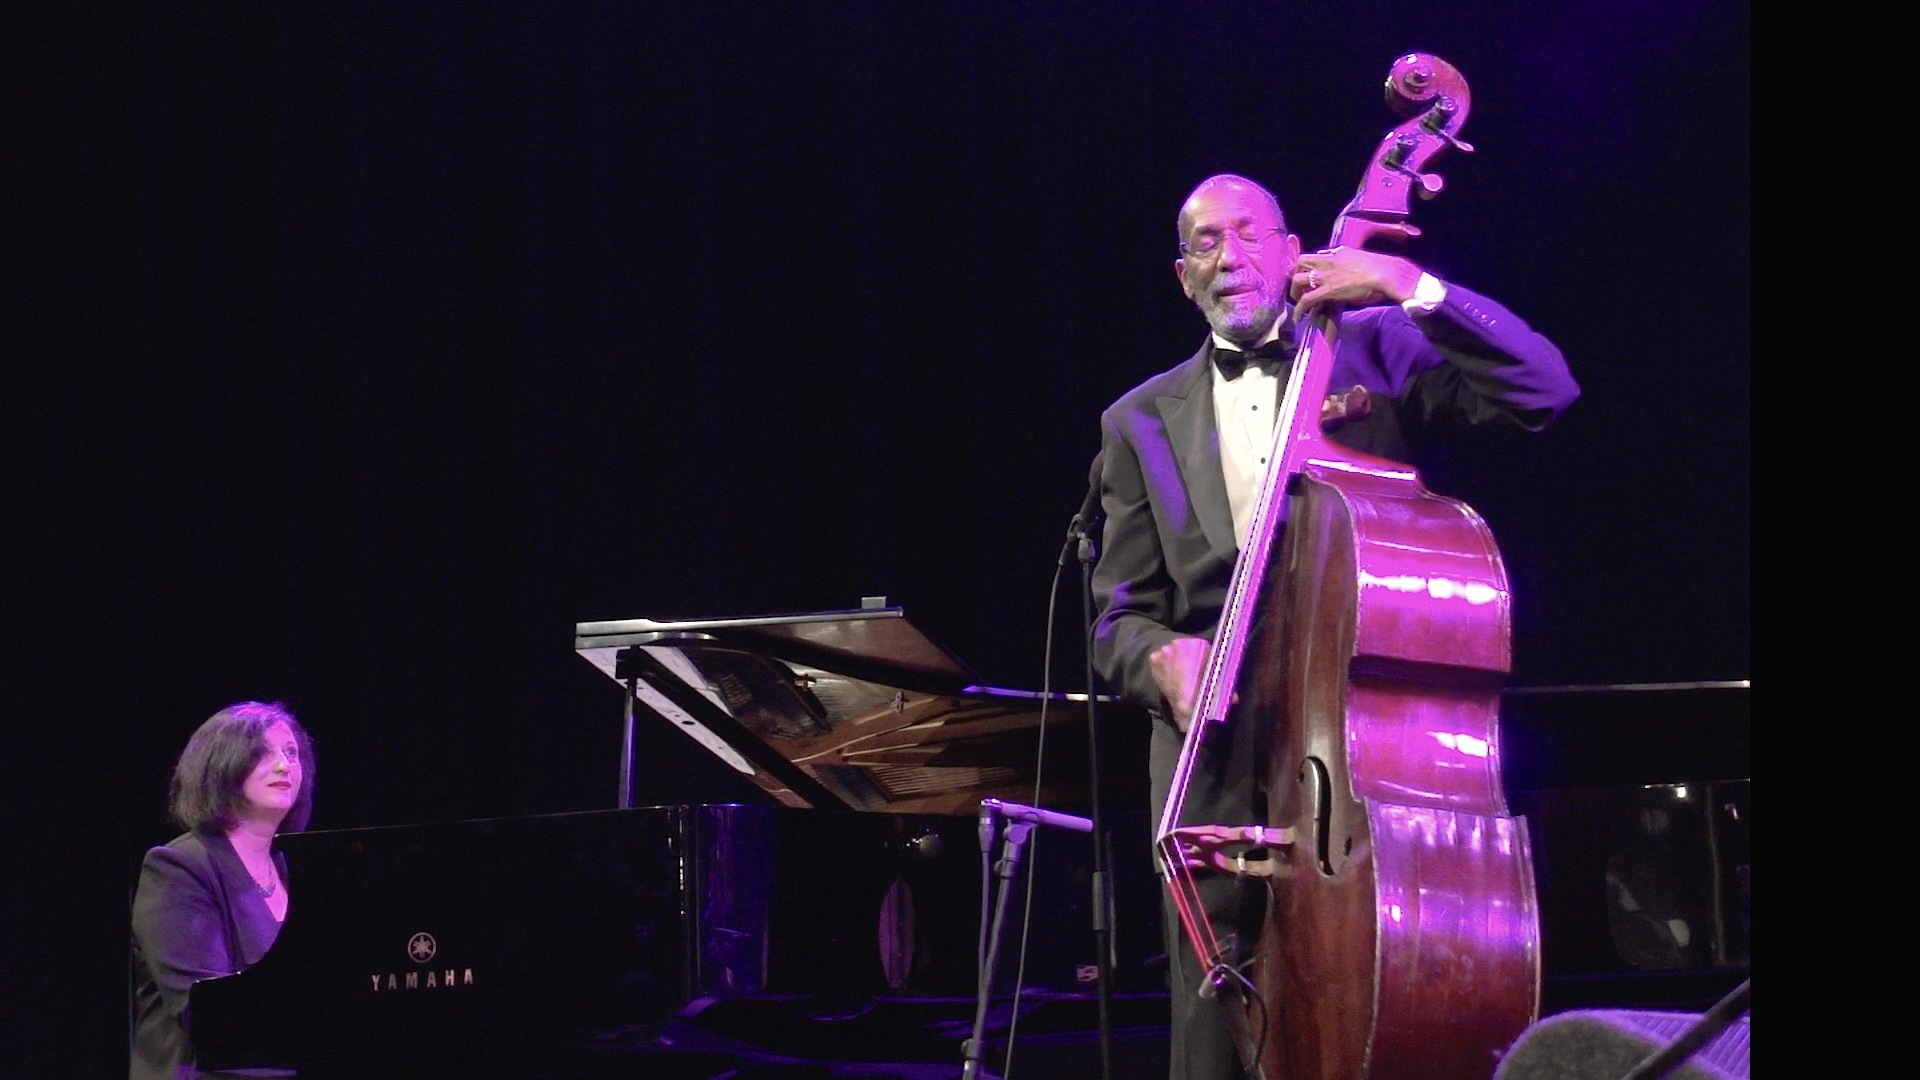 Ron Carter with Renee Rosnes on piano, a salute to Miles Davis,